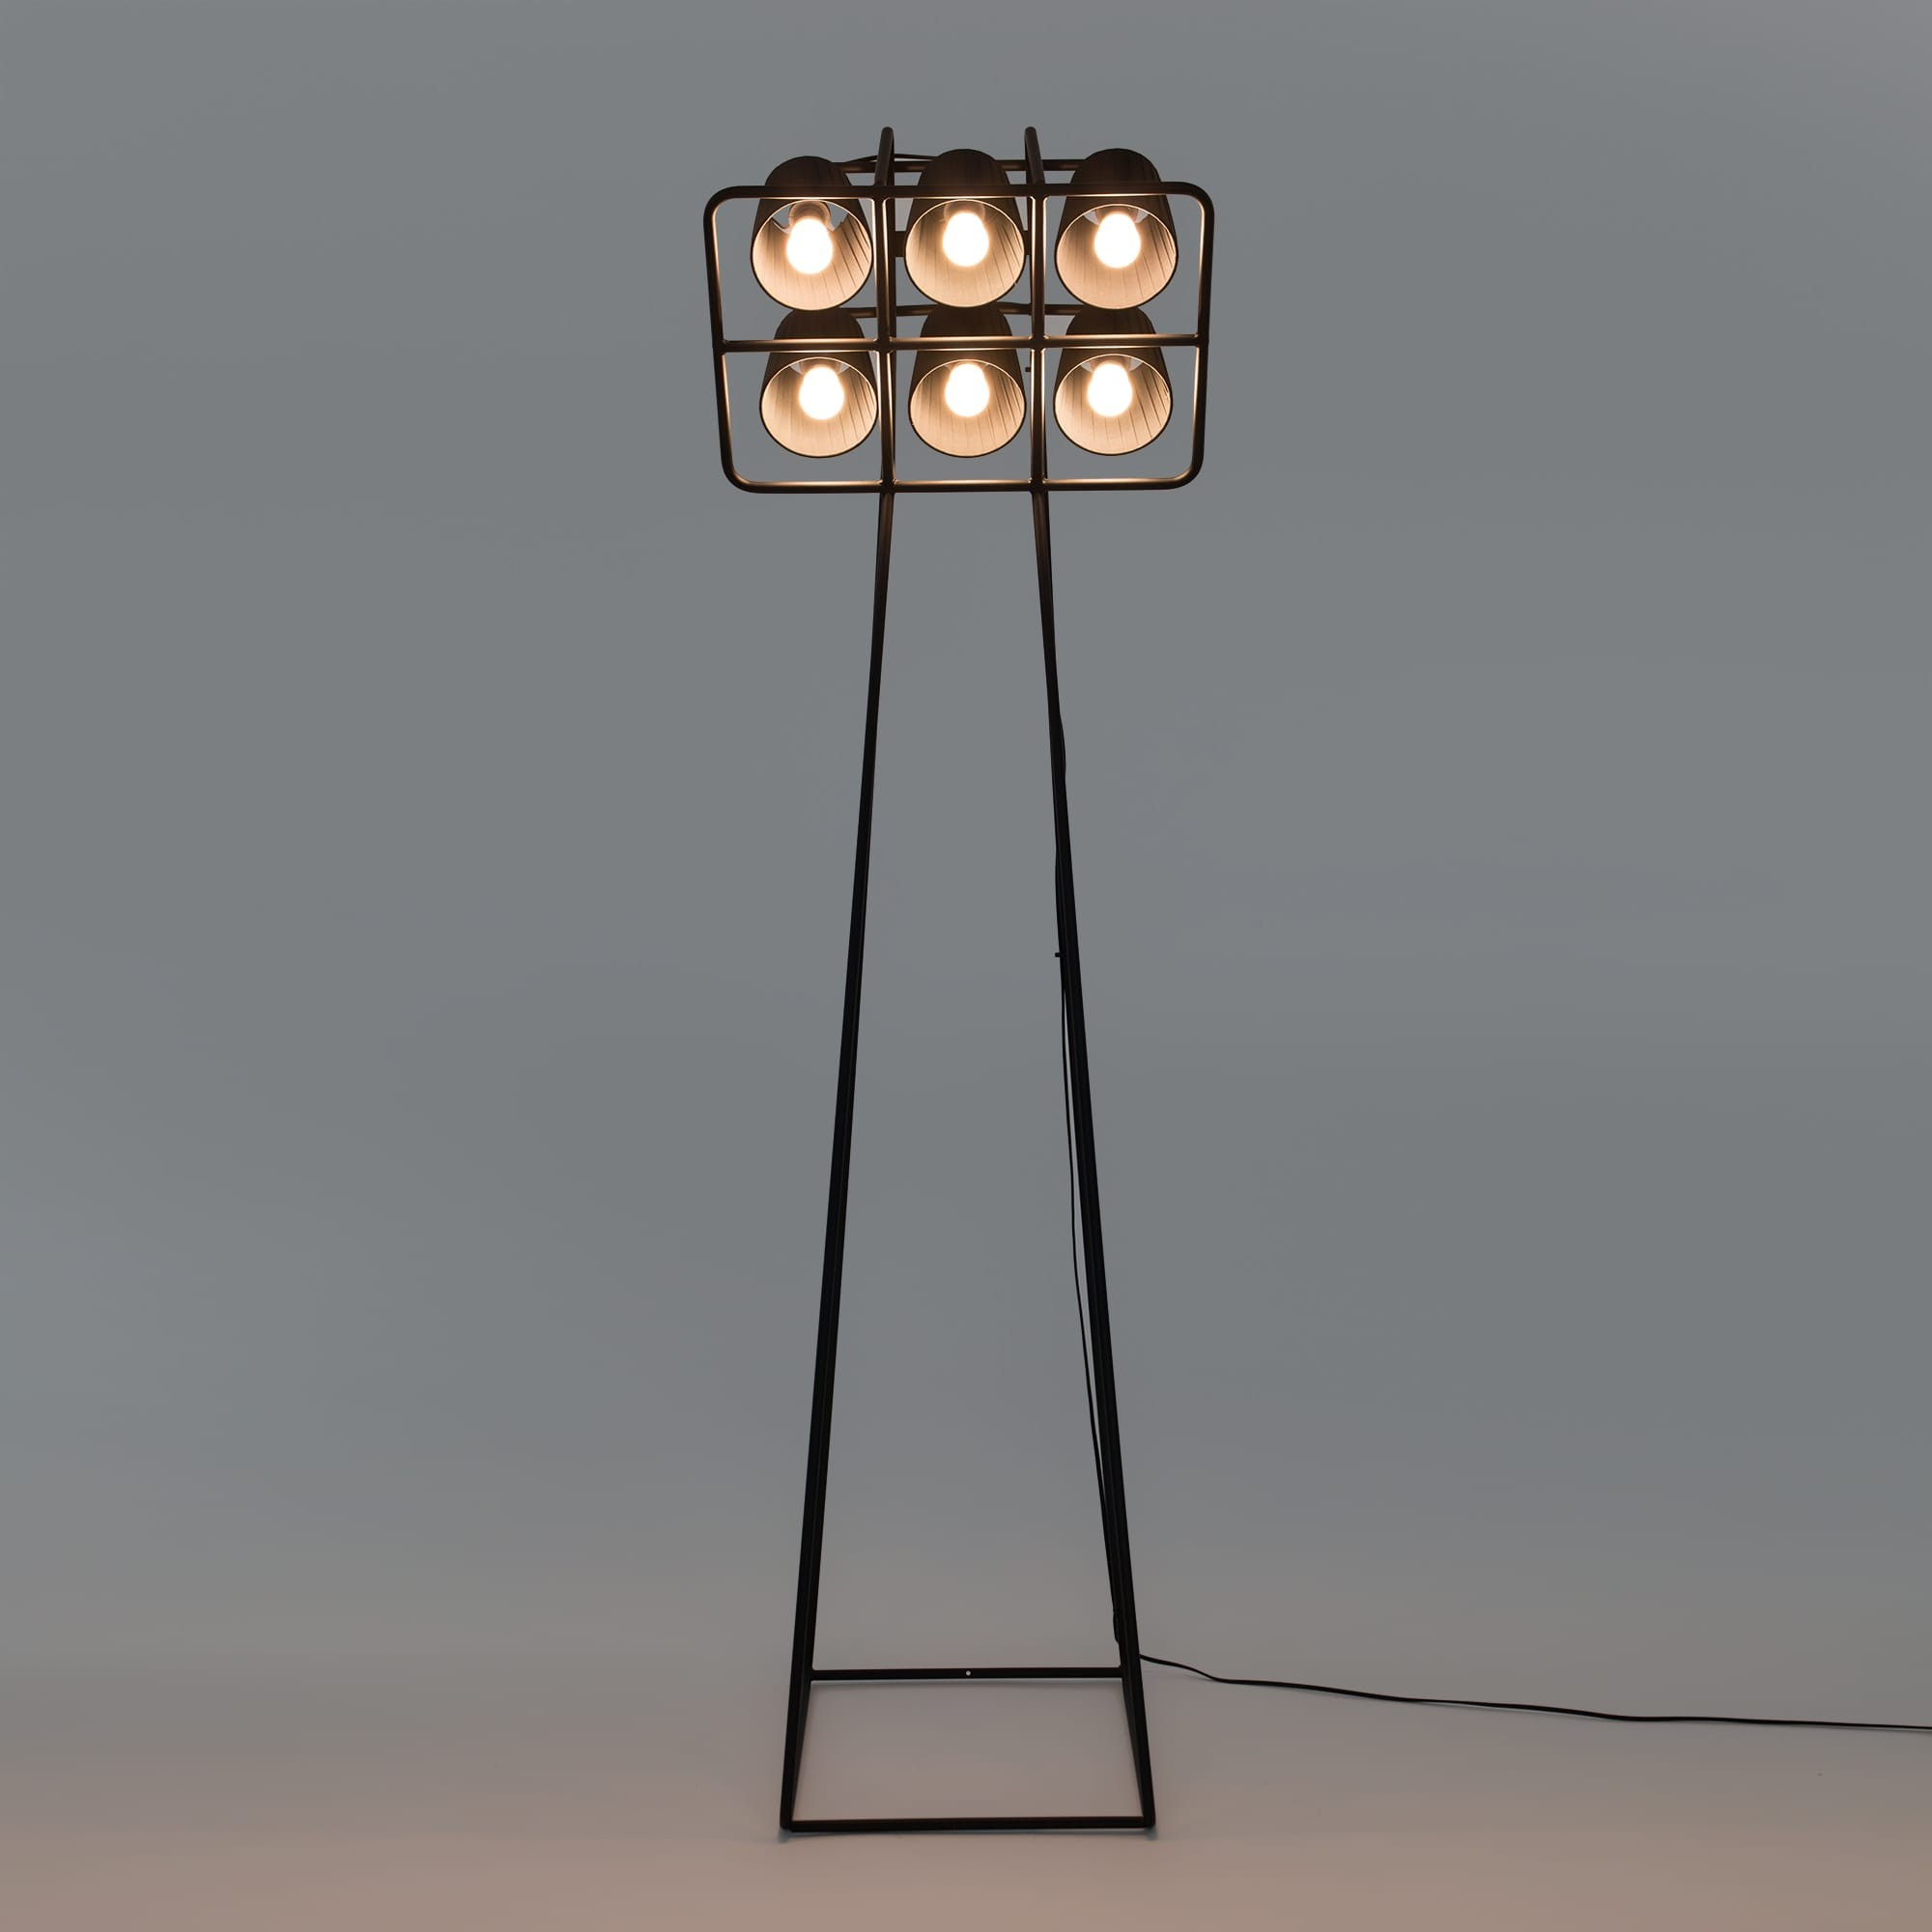 Multilamp football floor lamp seletti design is this multilamp football floor lamp black seletti mozeypictures Images